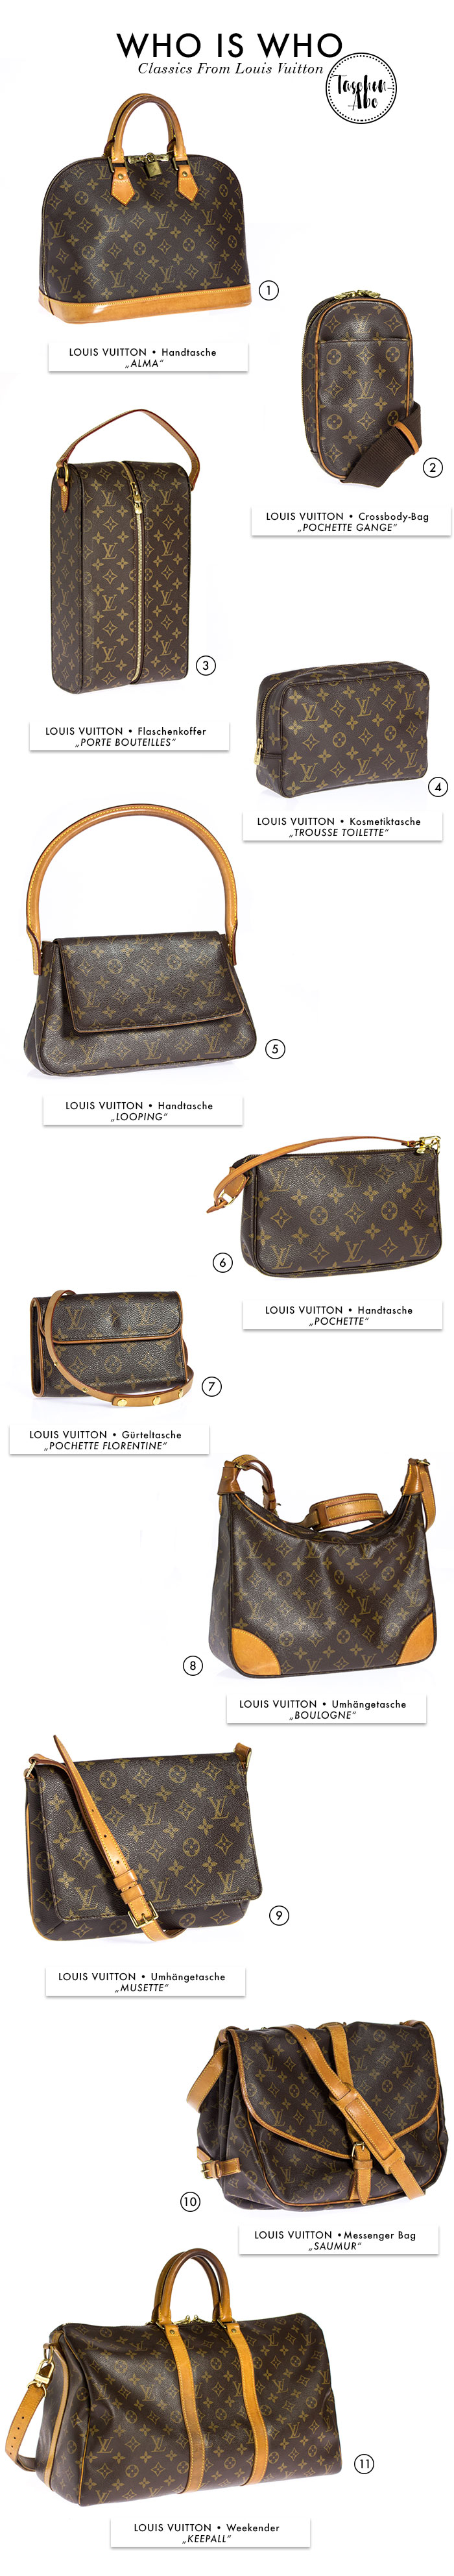 Louis Vuitton - Who is Who: Bags